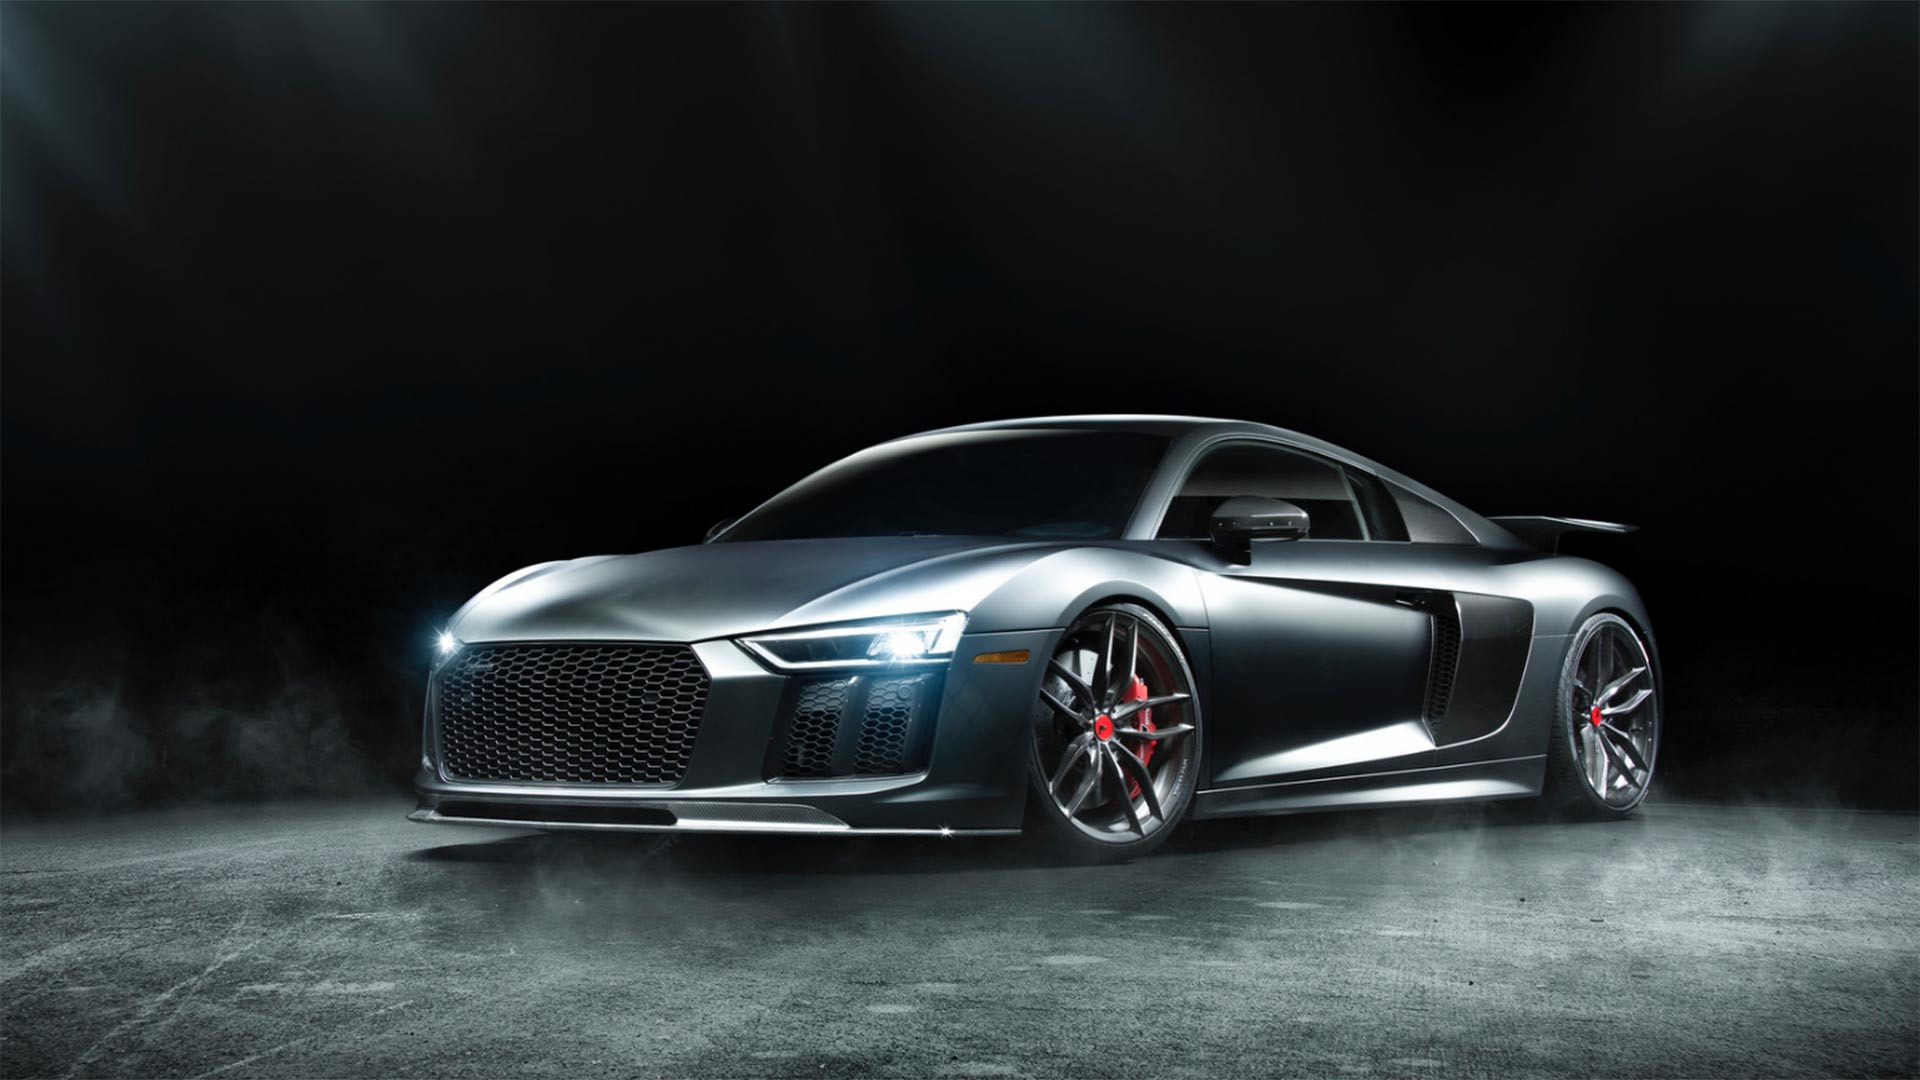 Audi R8 body kit by Vorsteiner keeps your supercar looking ...